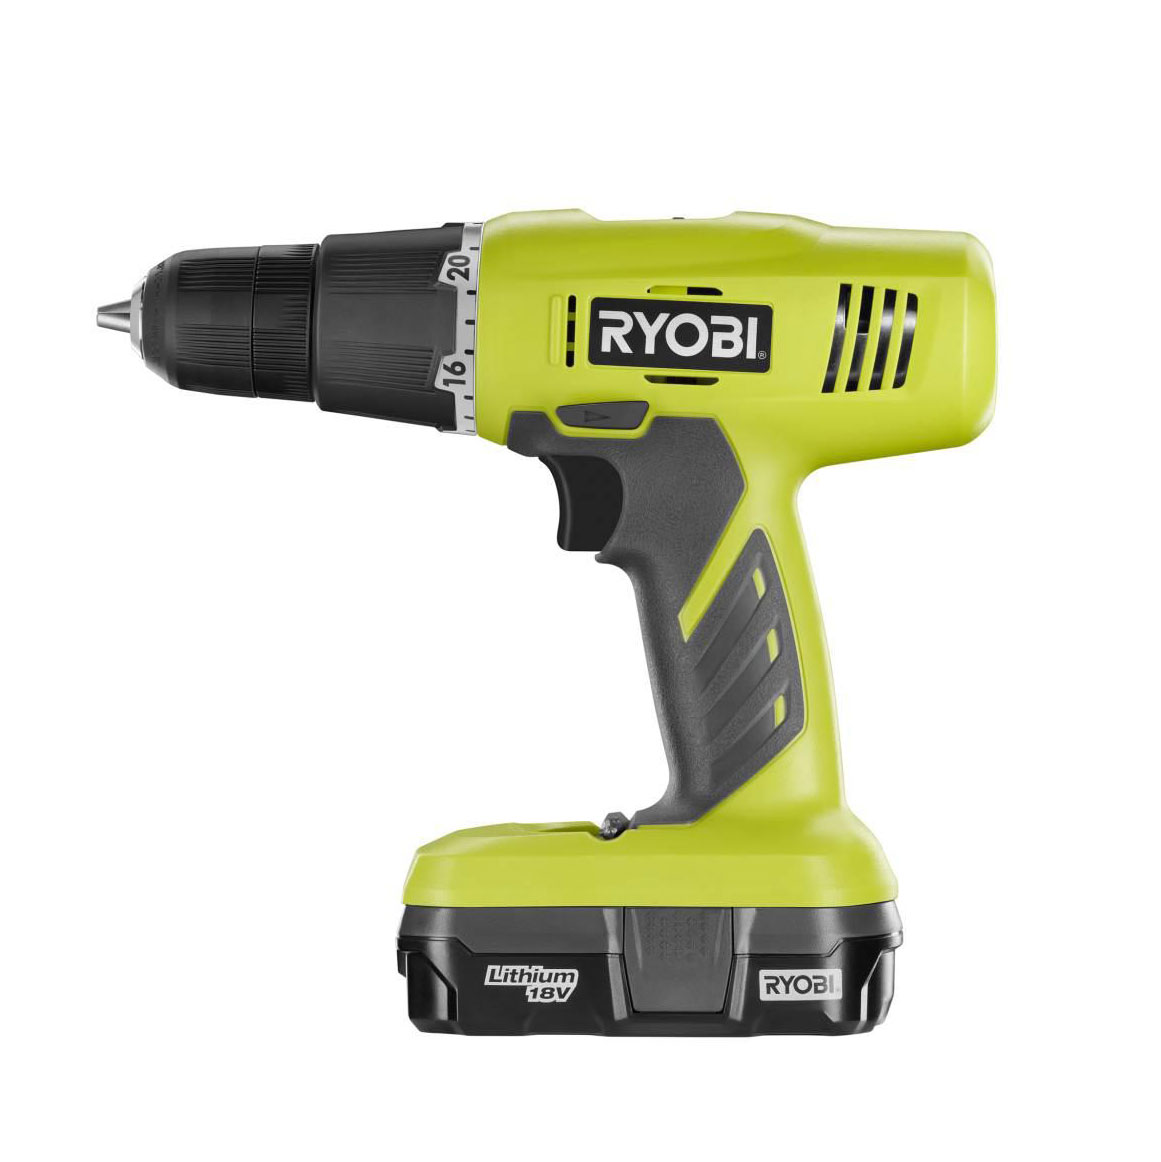 Ryobi 18 Volt One Lithium Ion Cordless Drill/Driver Kit (Certified Refurbished)